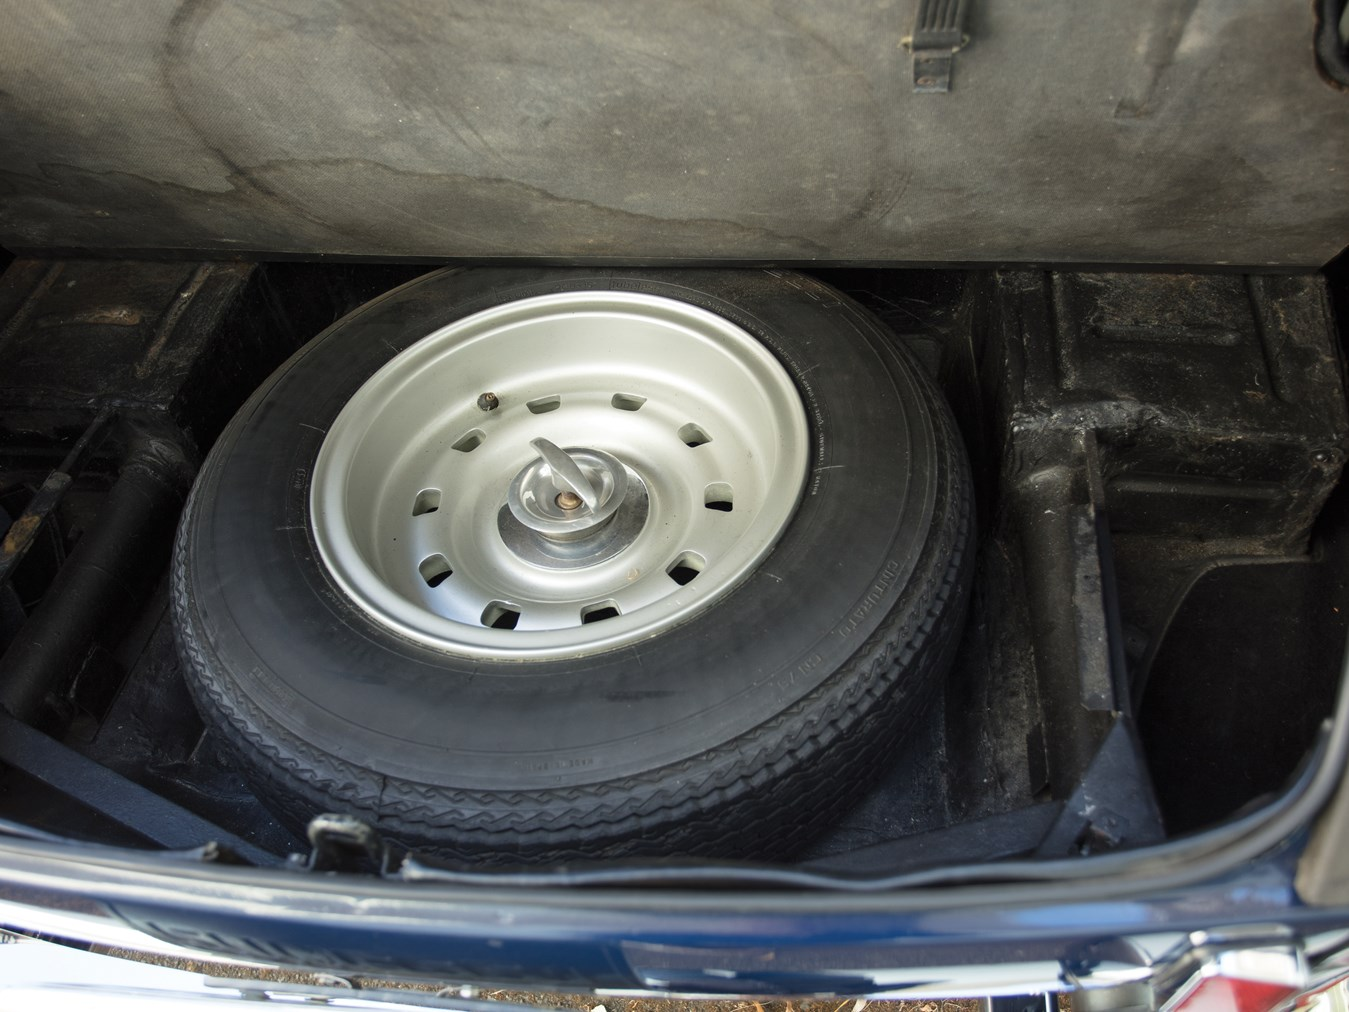 The spare tire sits neatly in a compartment under the luggage space.